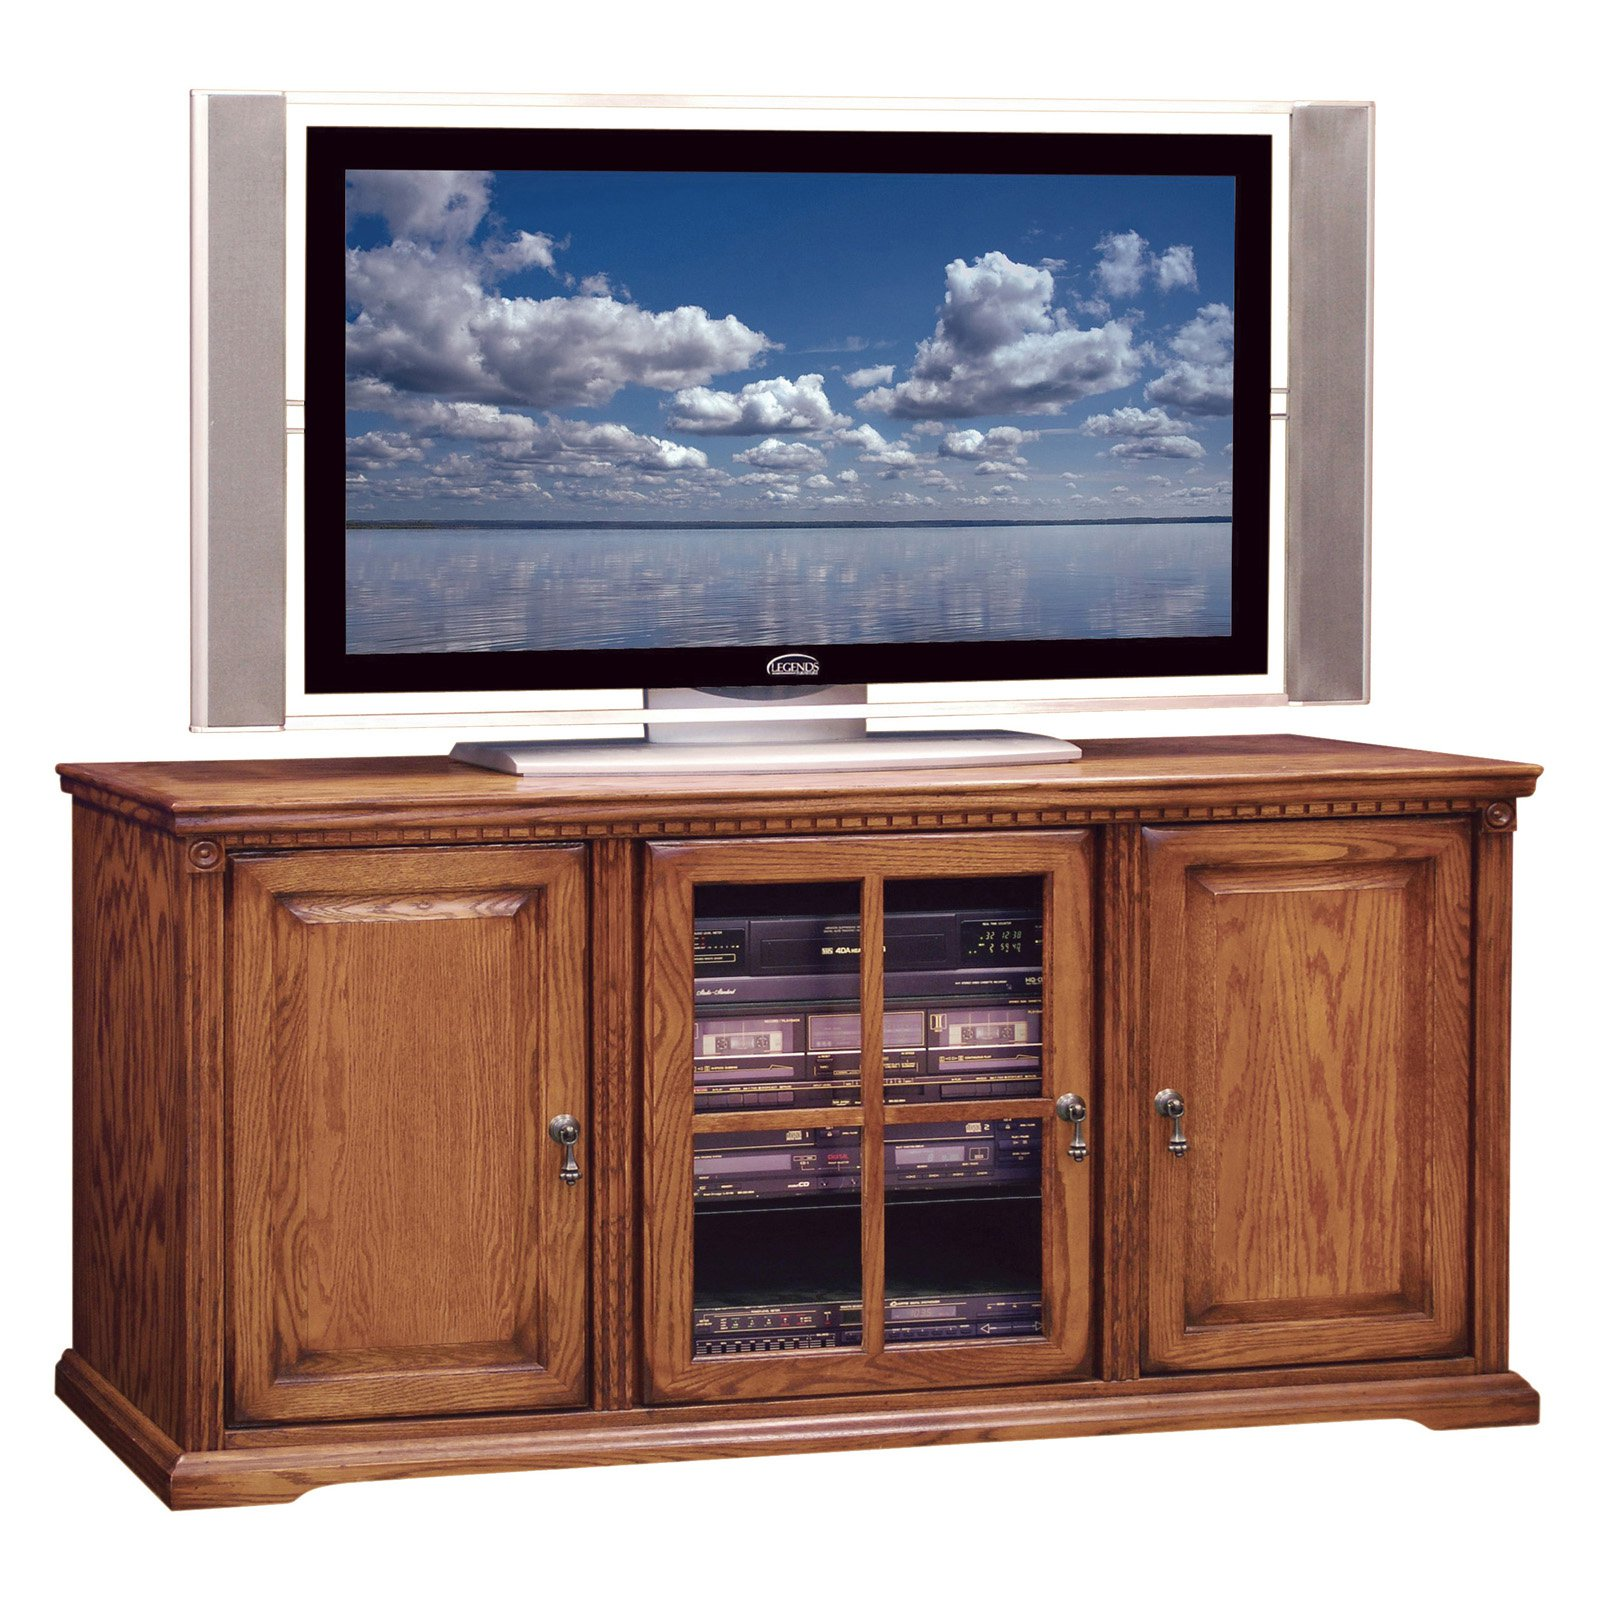 Legends Scottsdale 56 in. TV Console - Rustique